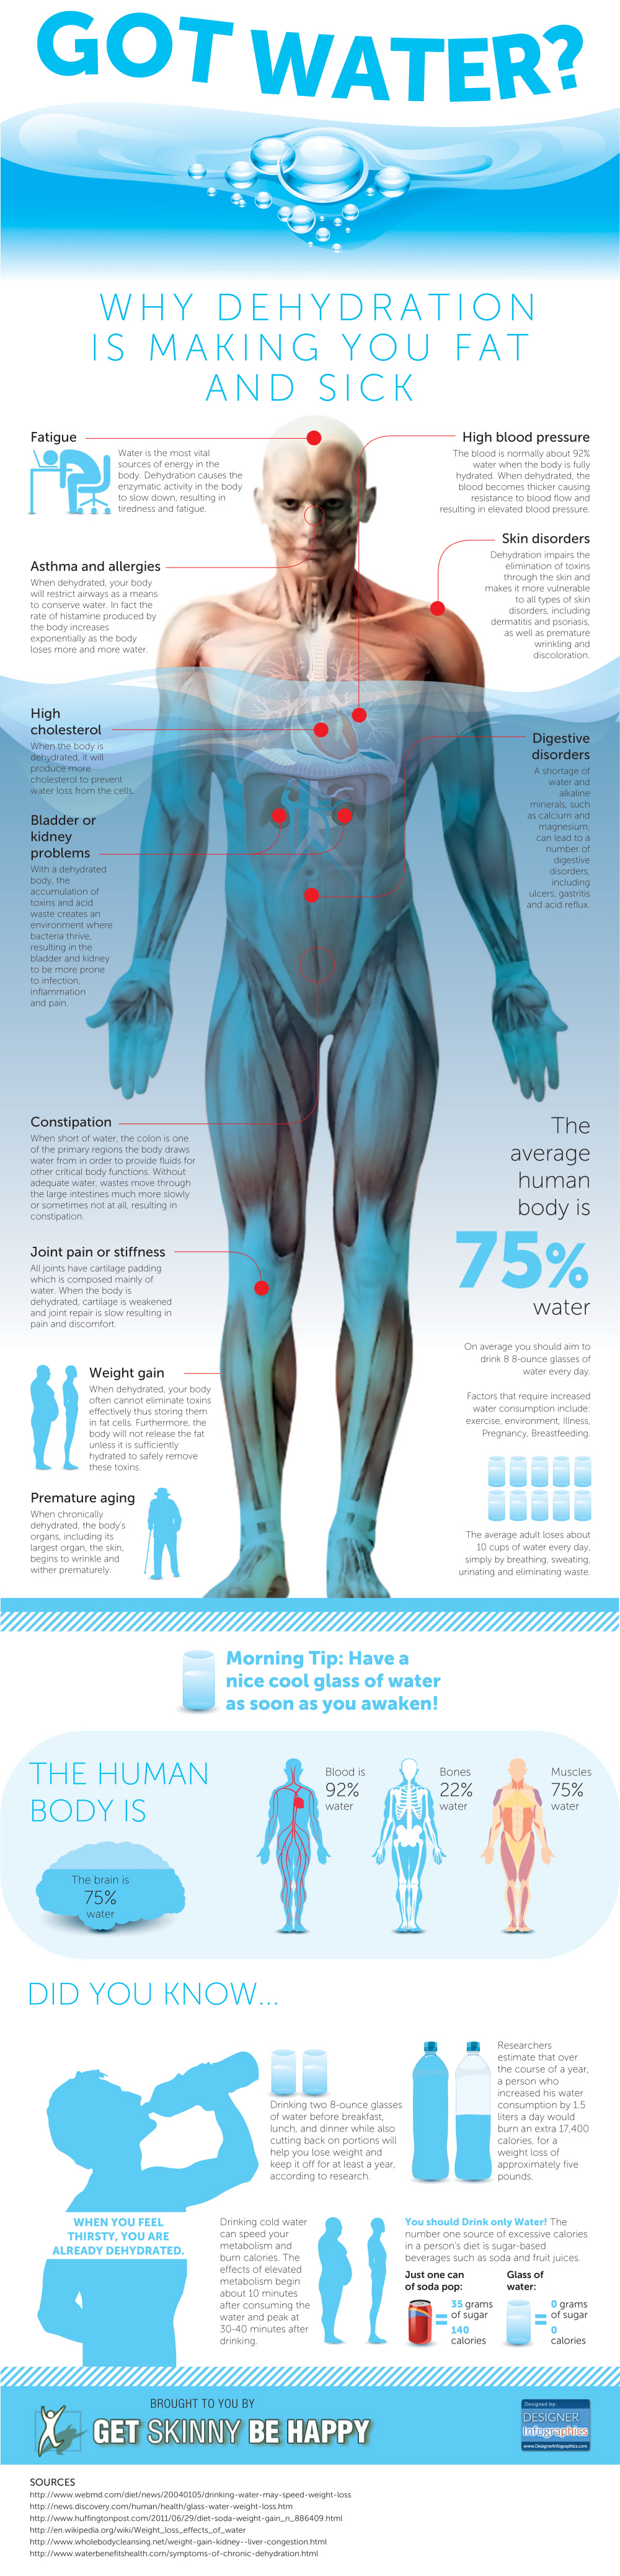 Losing Weight Just by Drinking Water? - Infographic